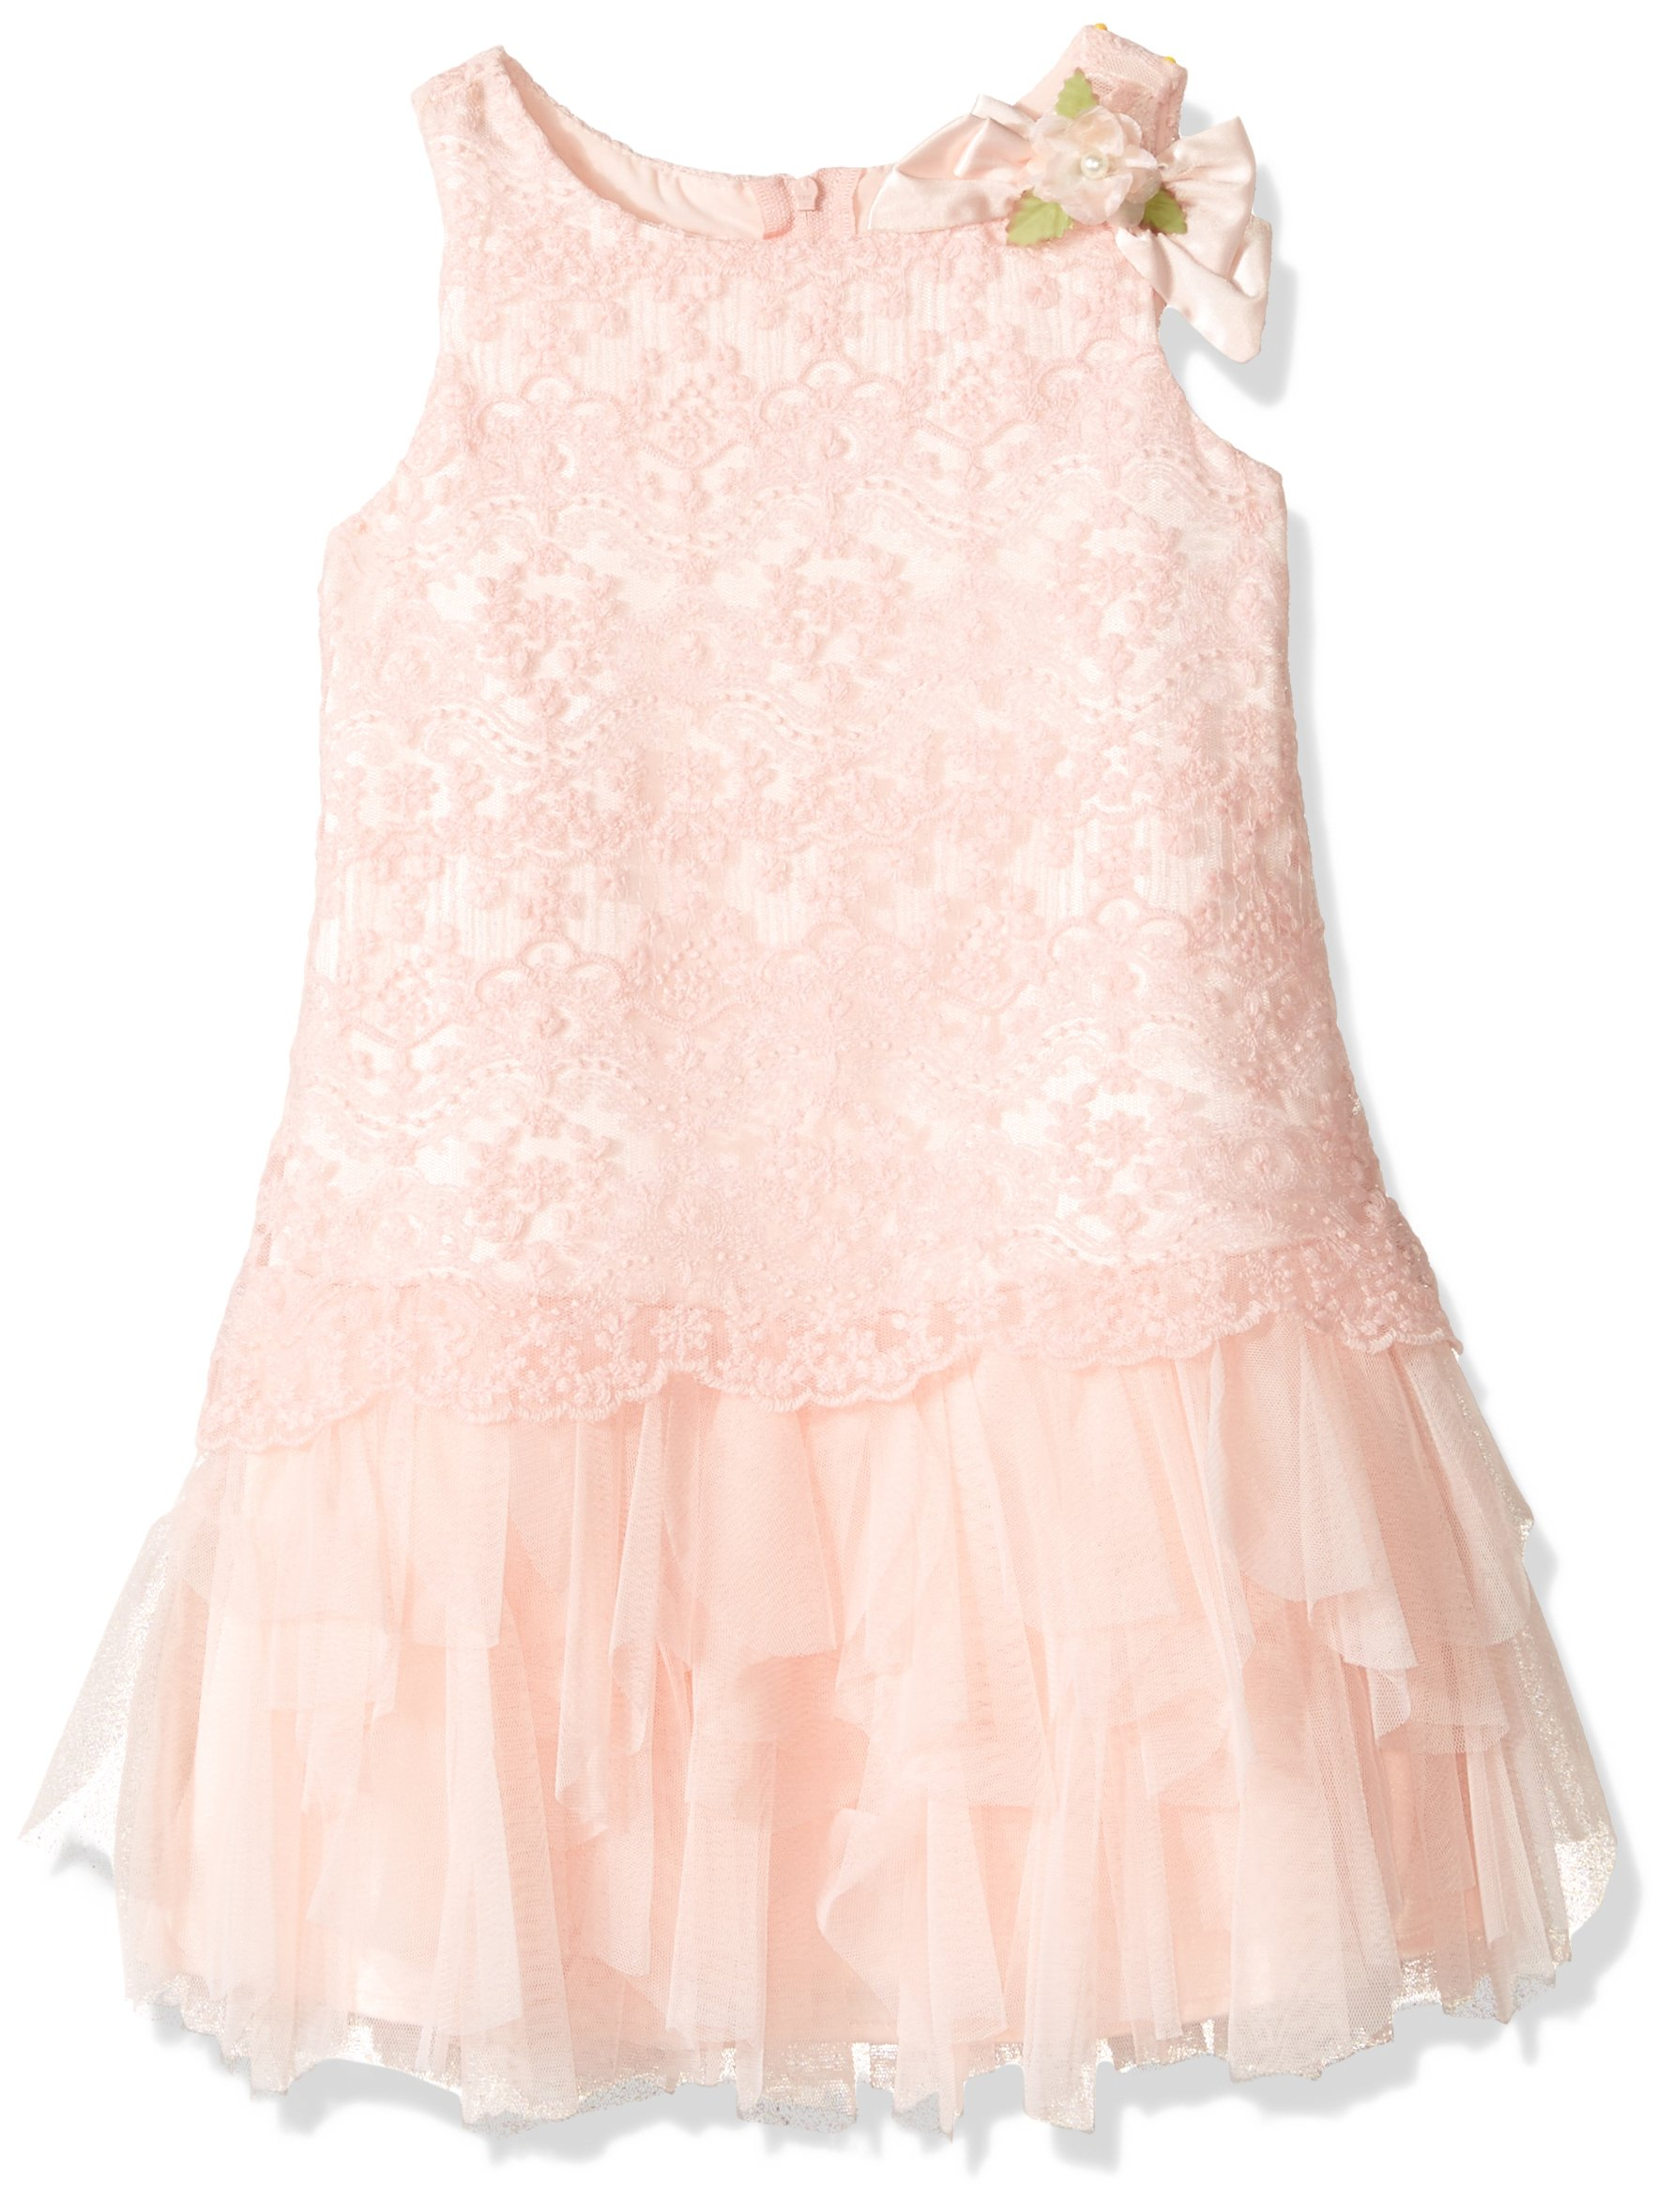 Biscotti Little Girls' Once Upon a Wish Dress with Embroidered Bodice, Pink, 6